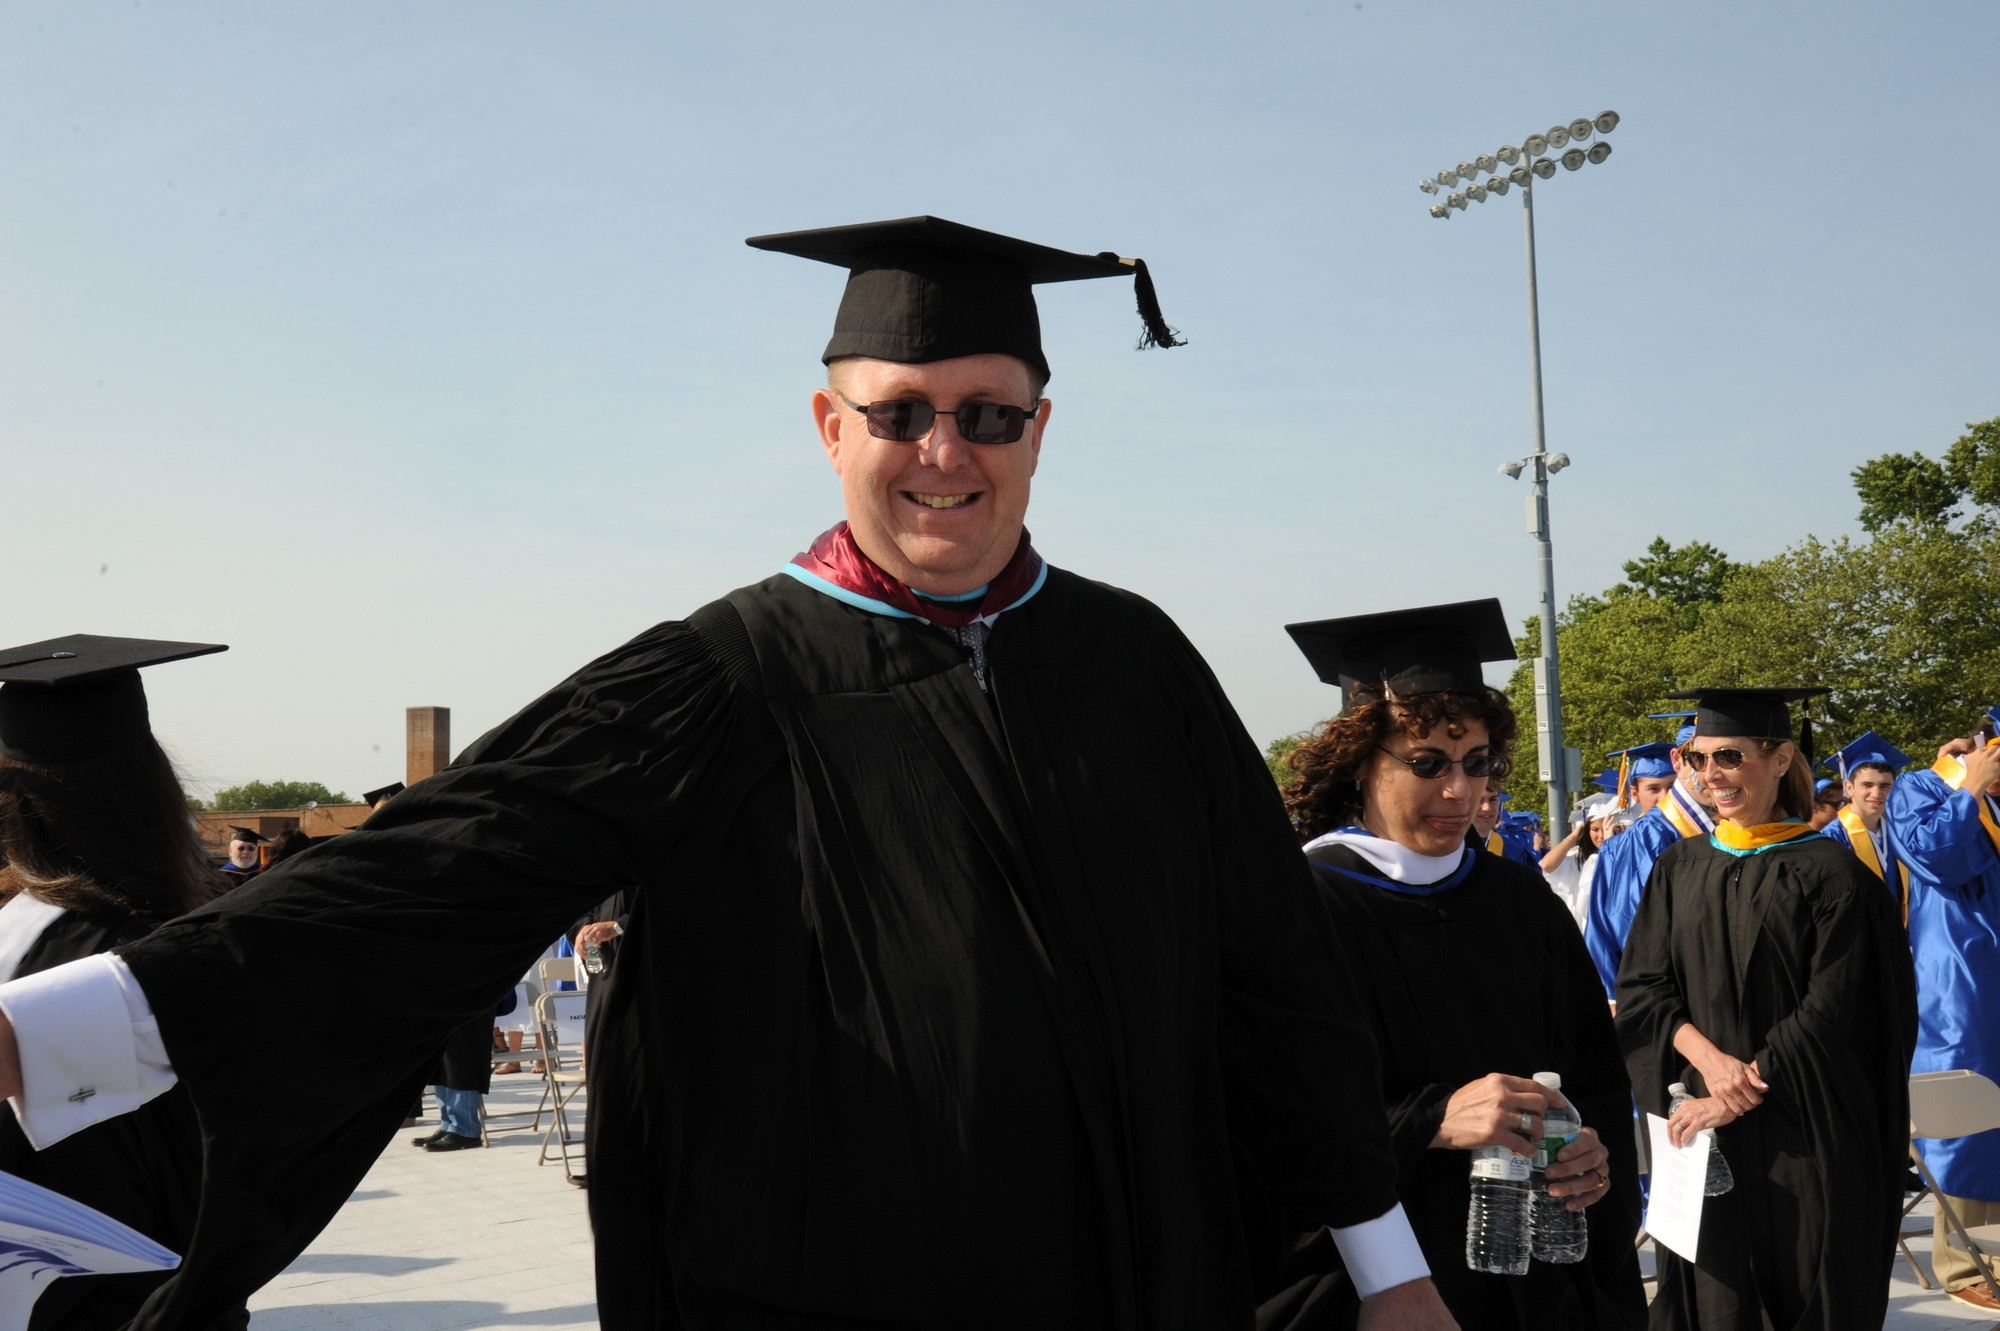 Oceanside High School principal Mark Secaur, pictured here at last month's graduation exercises, will be leaving August 1 to become an assistant superintendent in the Hewlett-Woodmere schools.